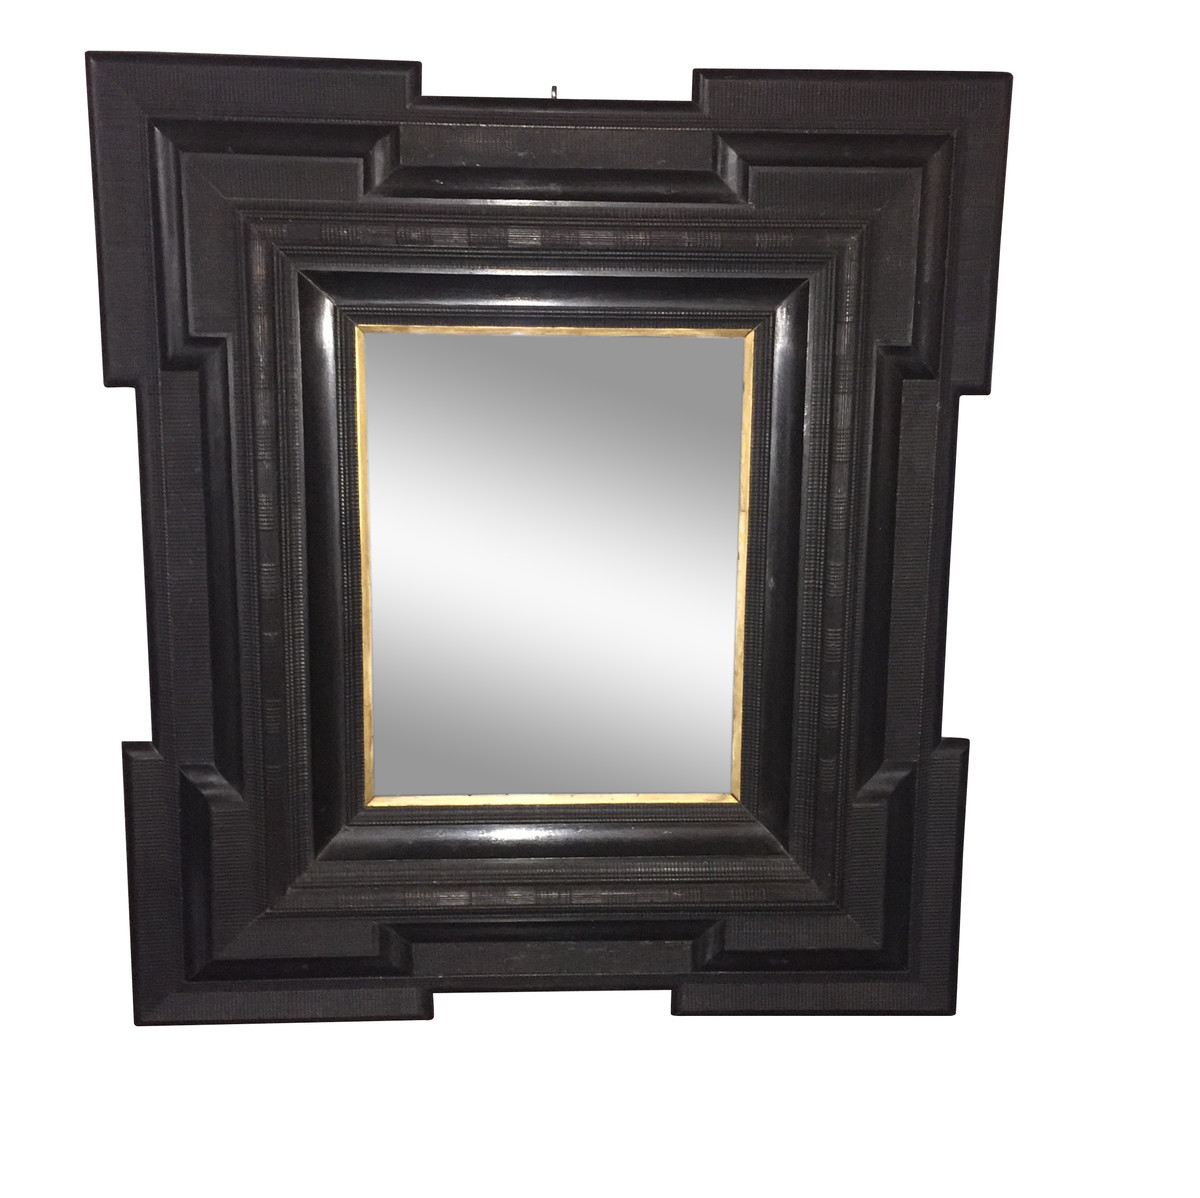 Balsamo antiques 19thc dutch large black framed mirror for Big framed mirror